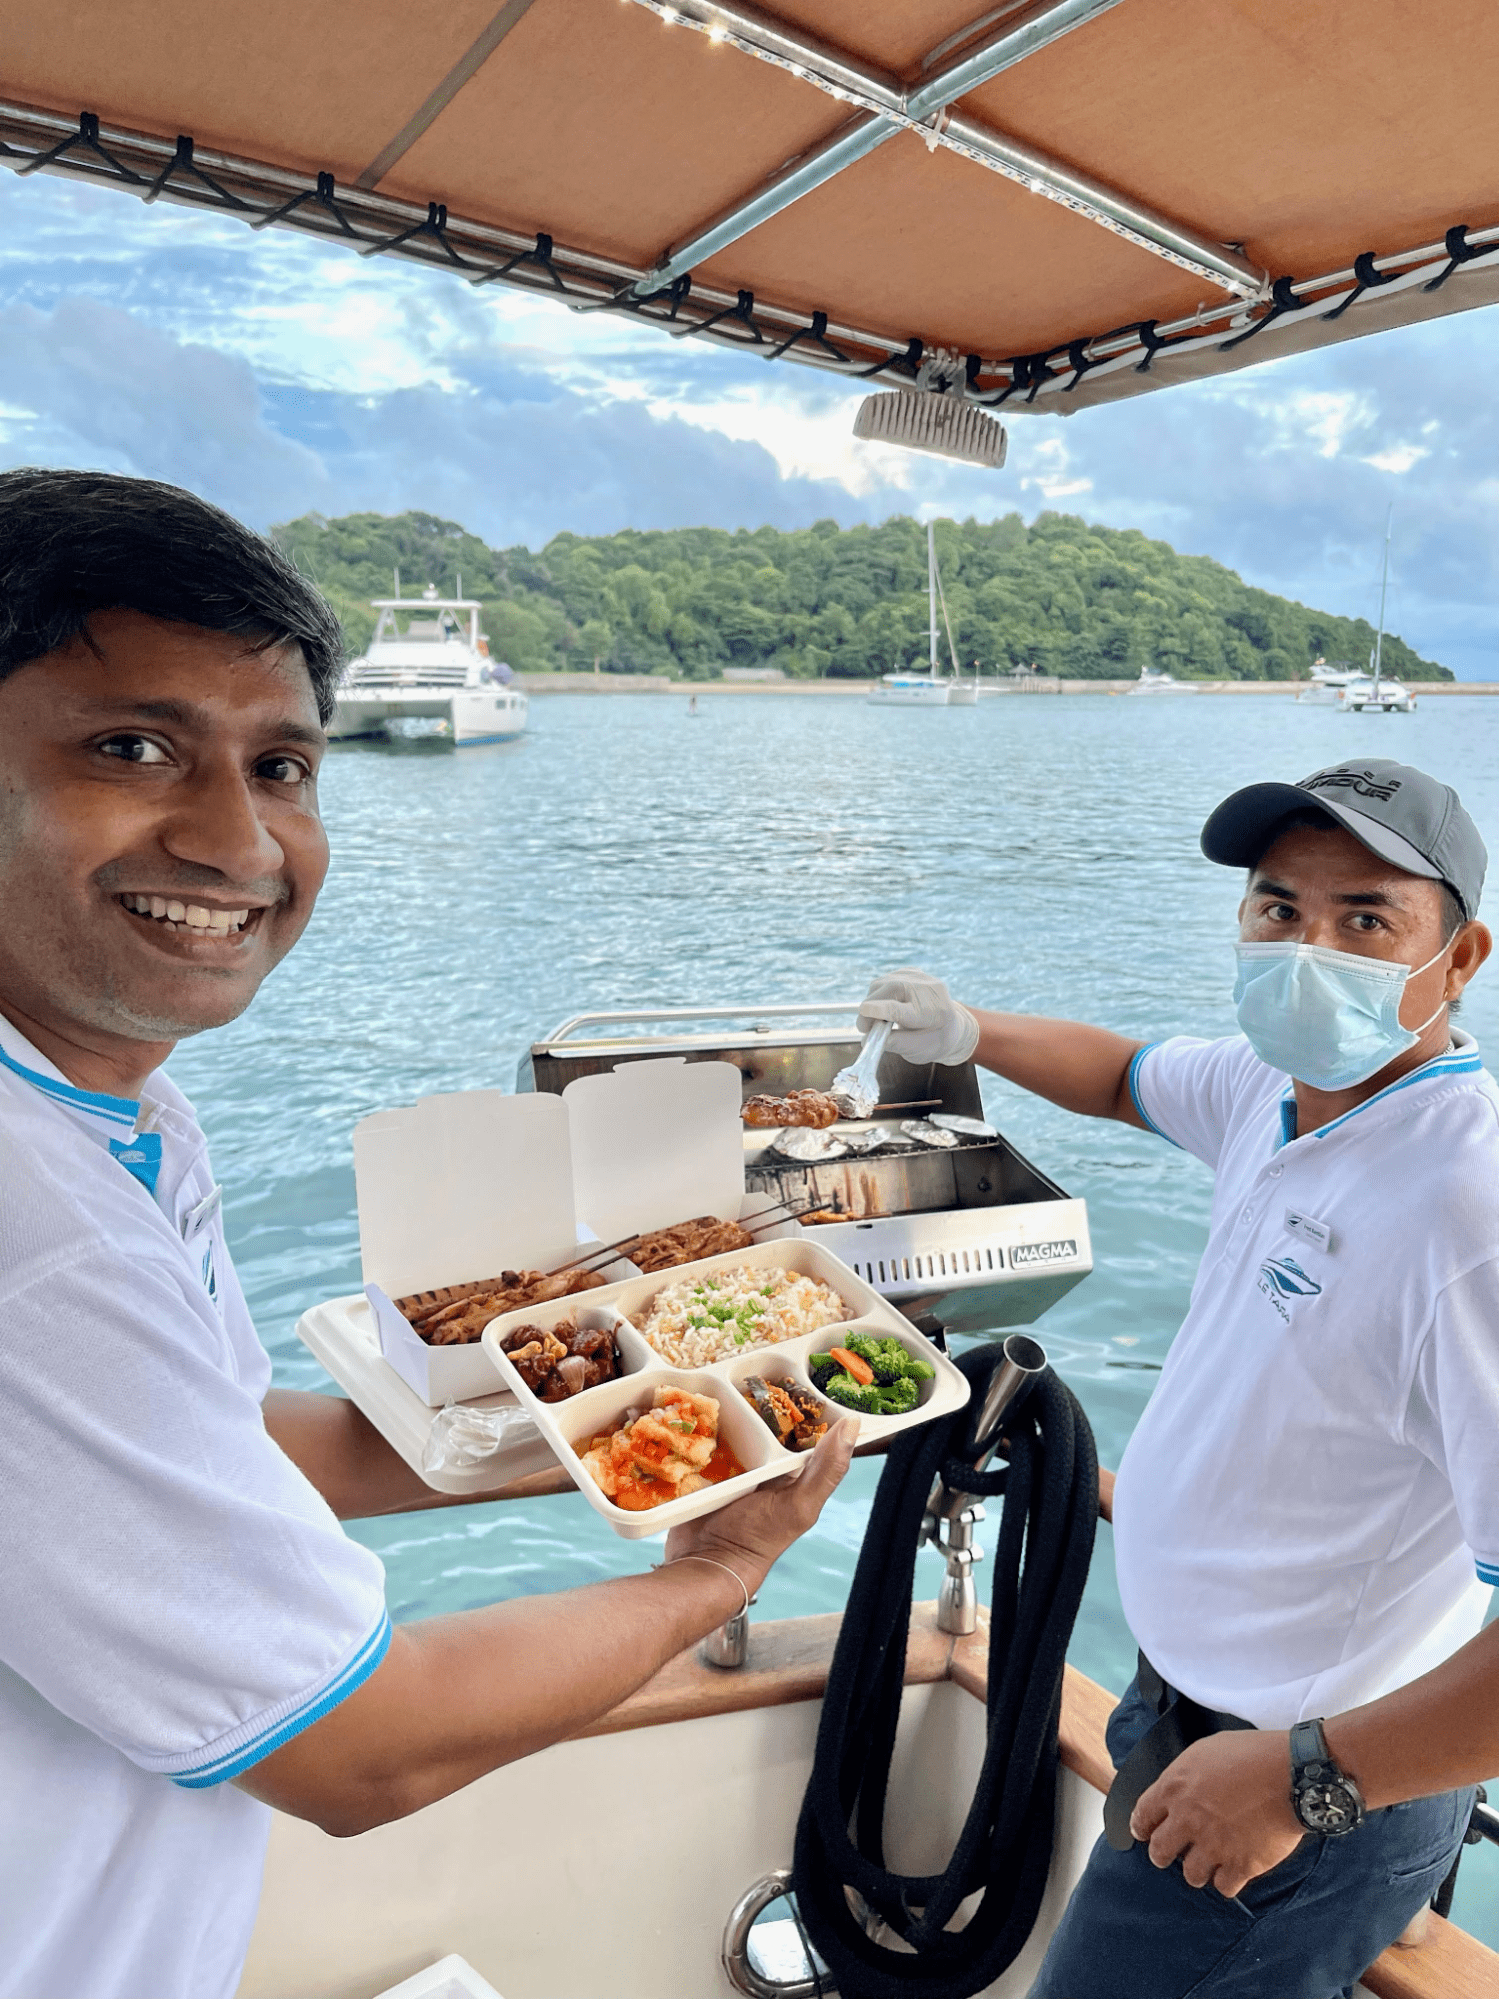 bbq dinner on a boat